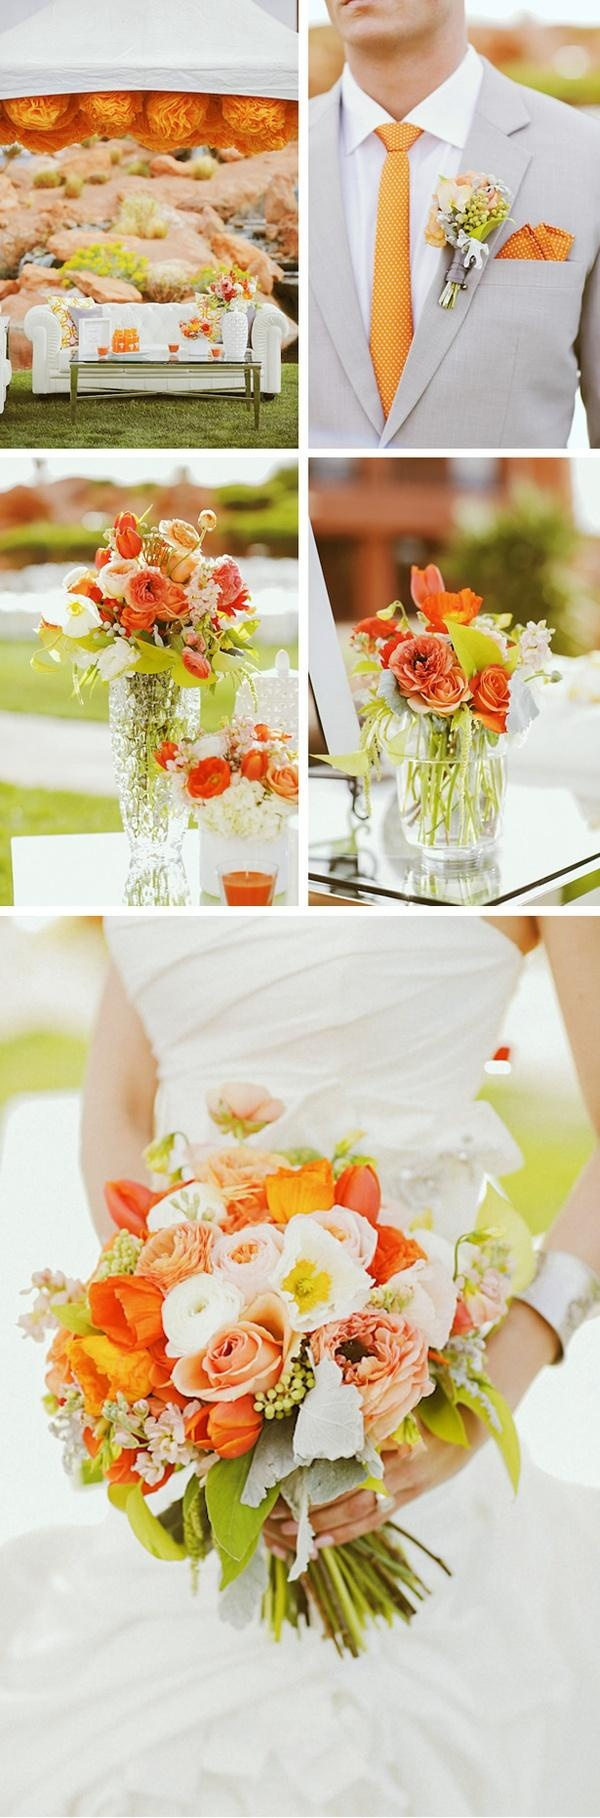 Orange wedding. View more tips & ideas on our Facebook Page : https://www.facebook.com/BoutiqueBridalParty